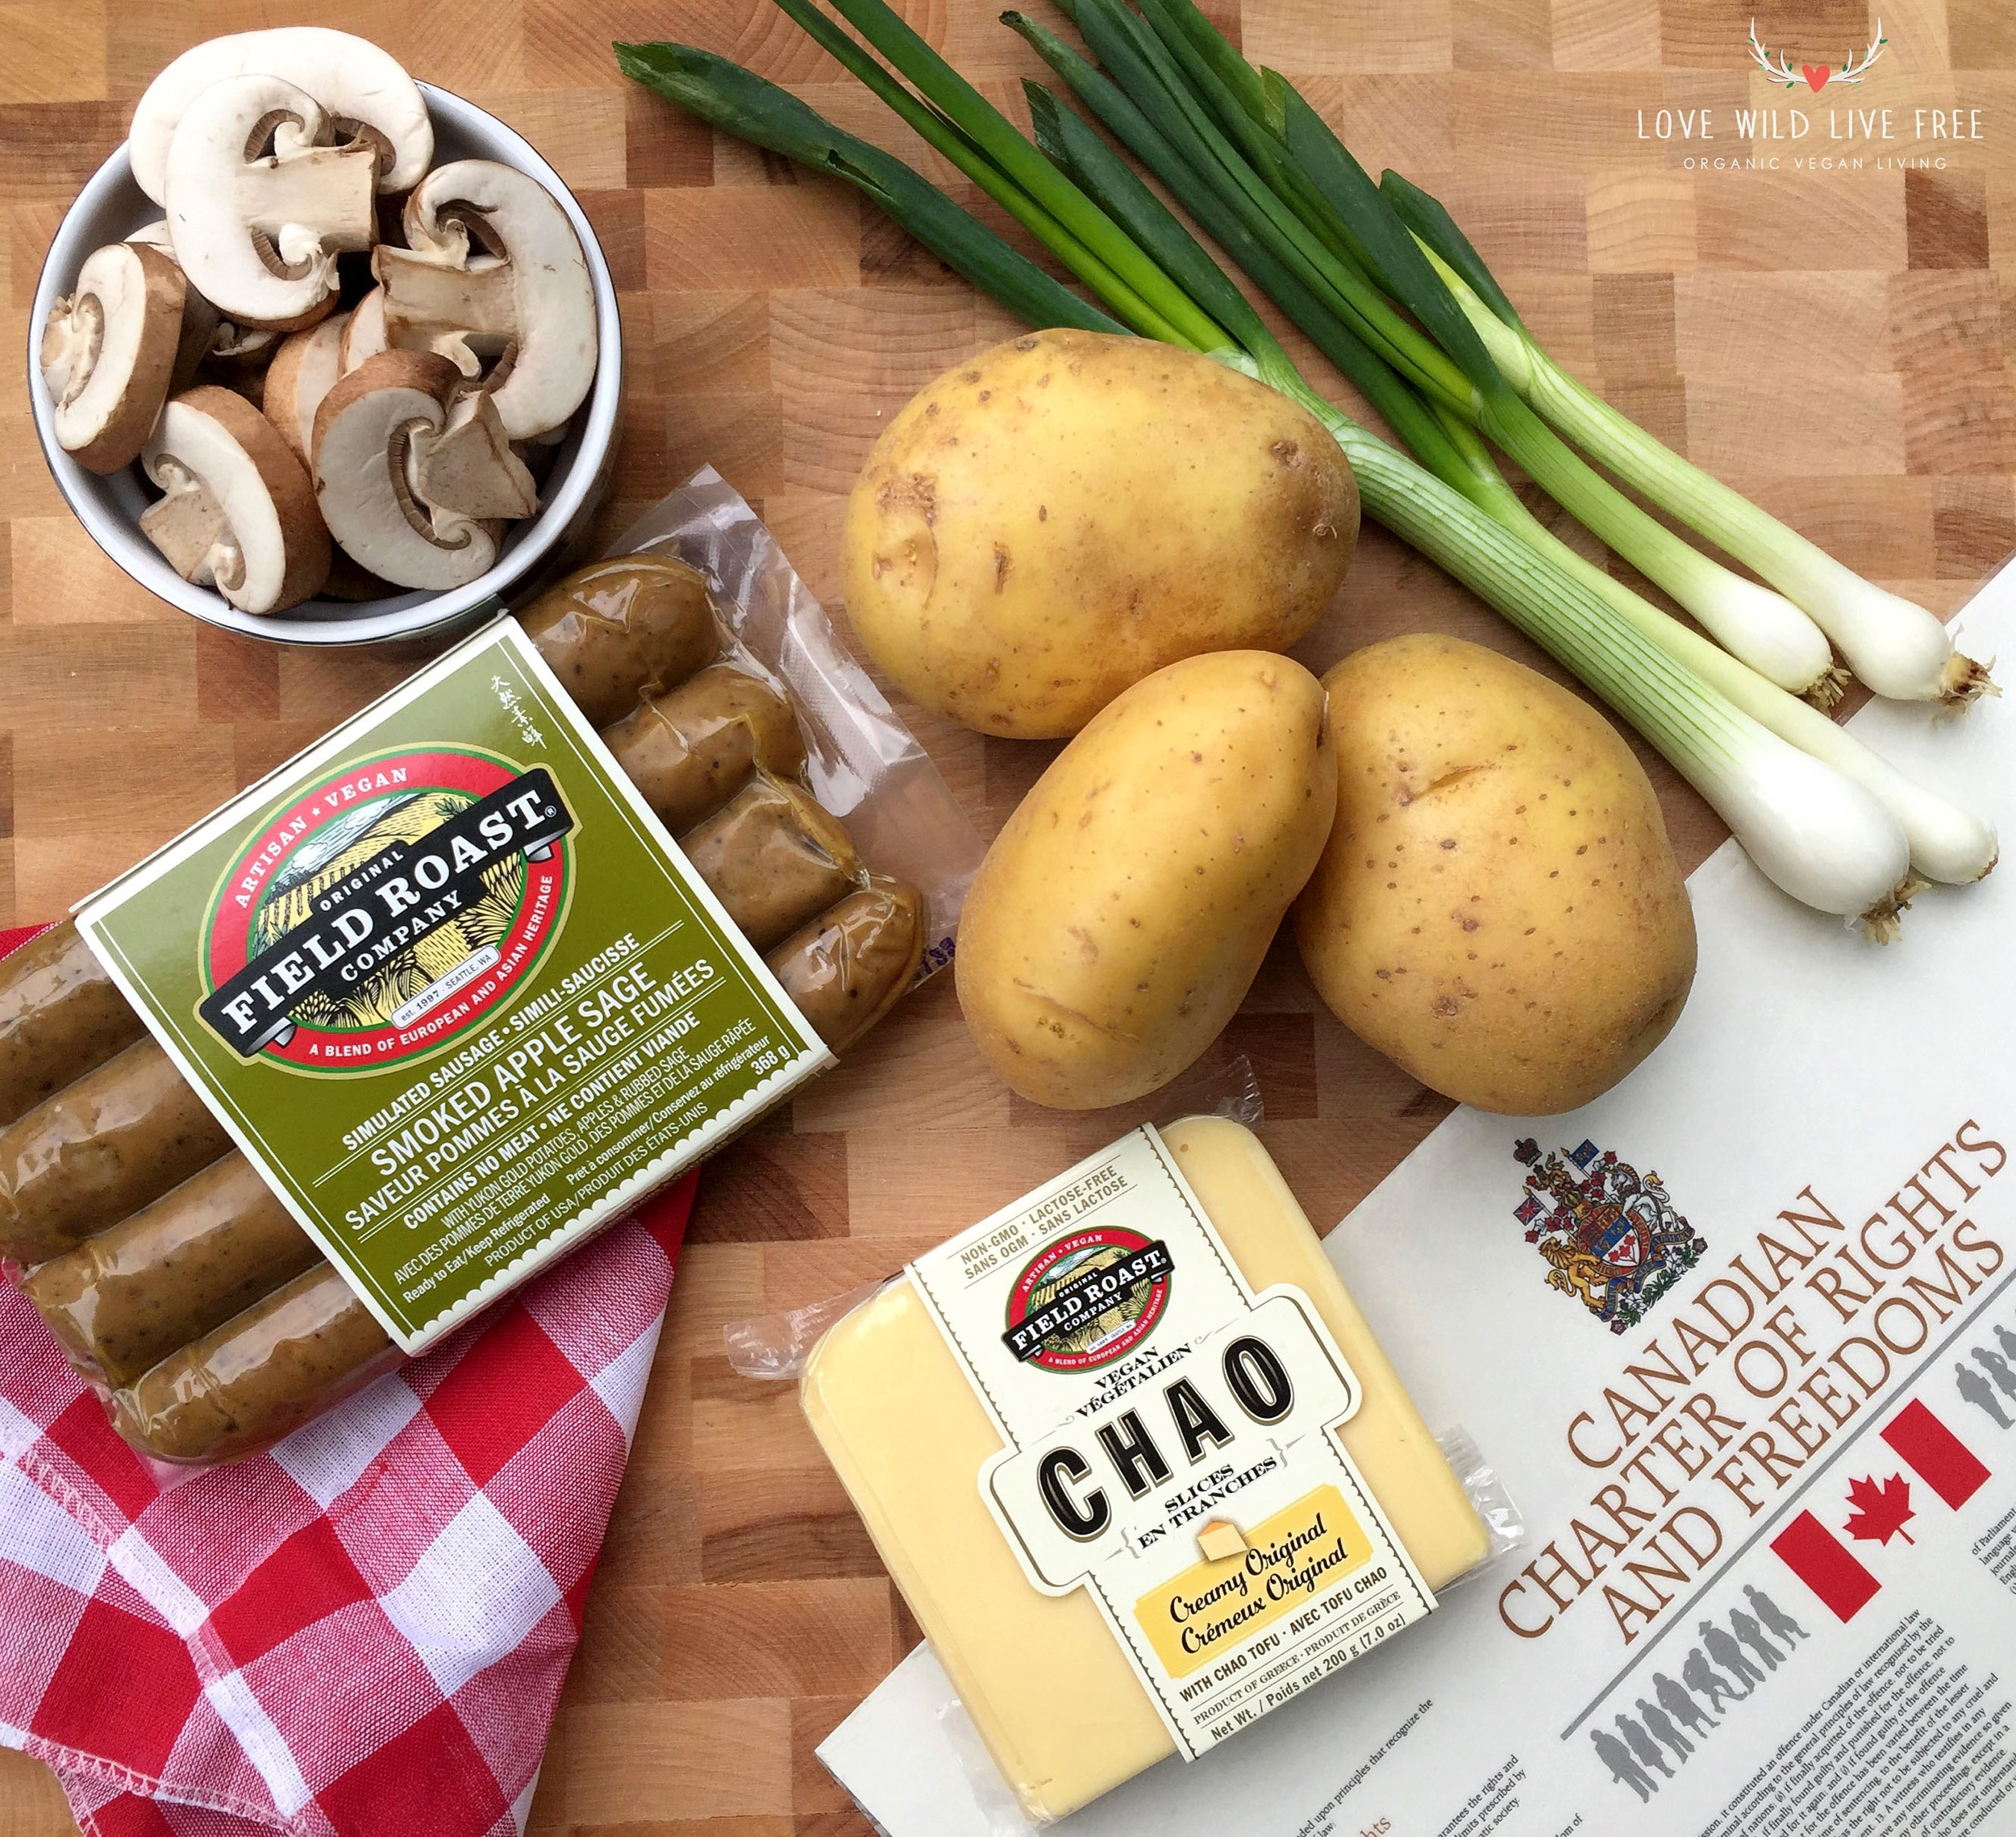 For my Vegan Poutine Recipe I've used Field Roast Creamy Original Chao Cheese and Smoked Apple Sage vegetarian grain meat sausage. Photo by Love Wild Live Free.